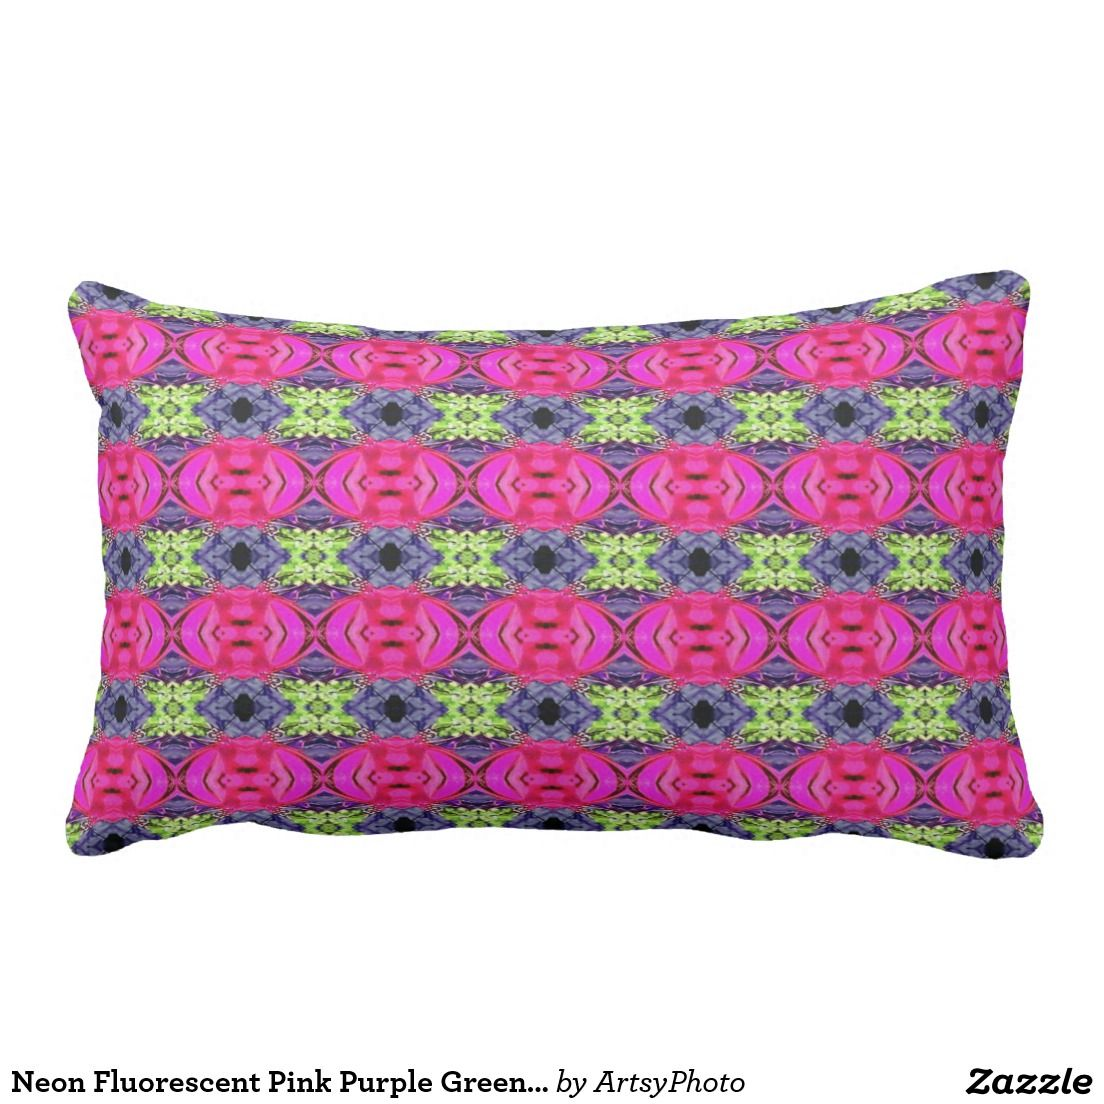 Neon fluorescent pink purple green girly pattern lumbar pillow